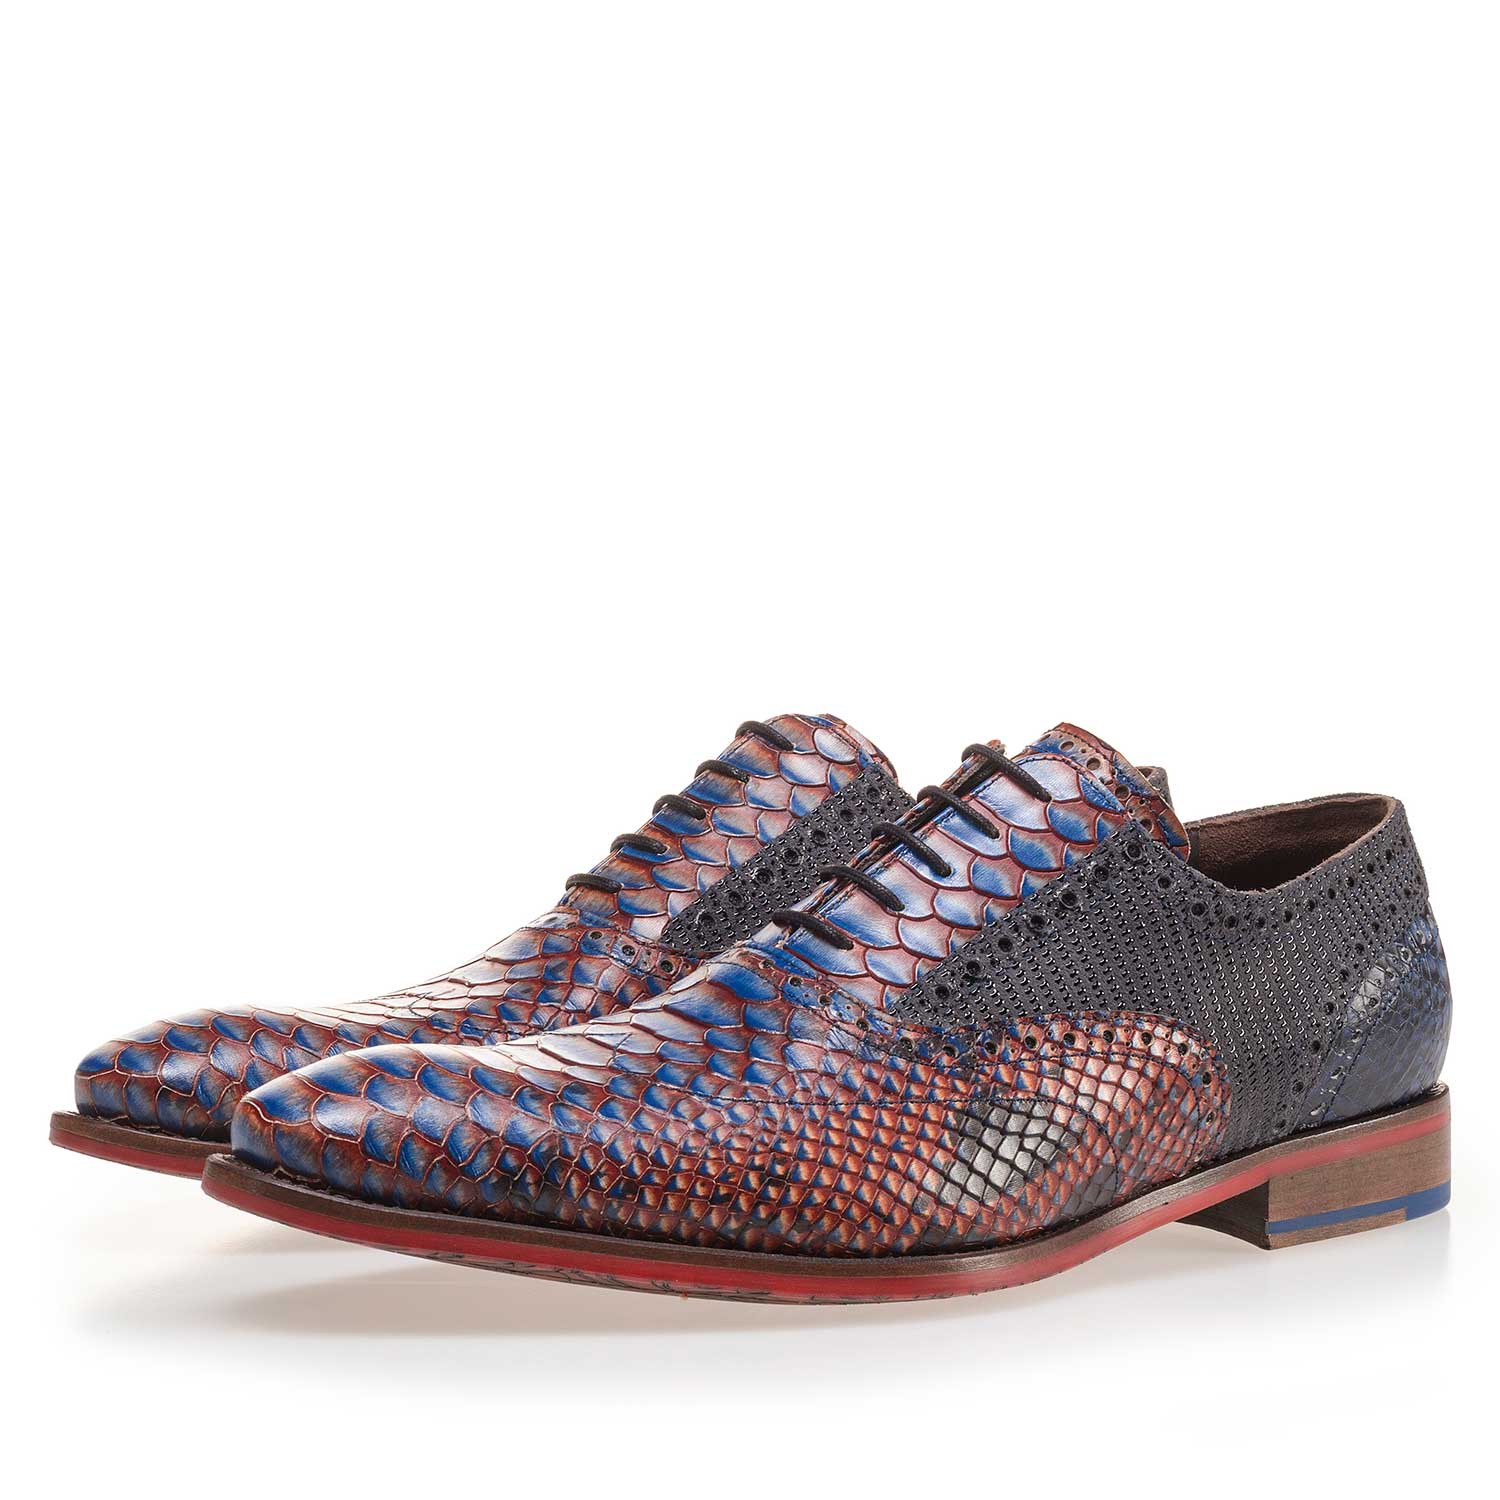 19104/08 - Calf's leather lace shoe with a snake print